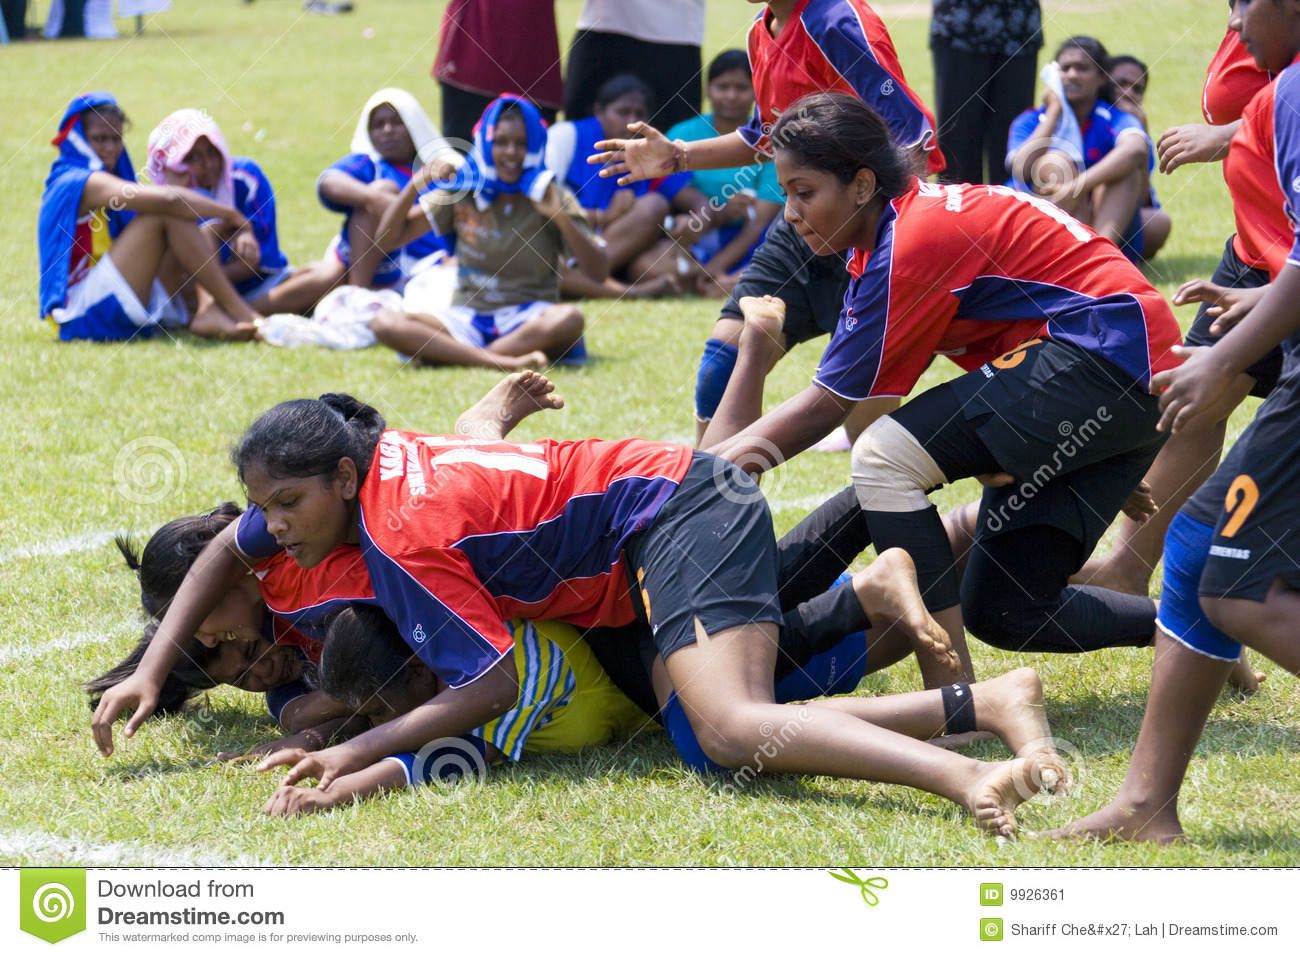 kabaddi south asian team sport essay Indian team had won silver medal at bangkok asian gamesa3 2 as expected india continued their dominance in kabaddi and clinched their fifth consecutive gold in the asian games.